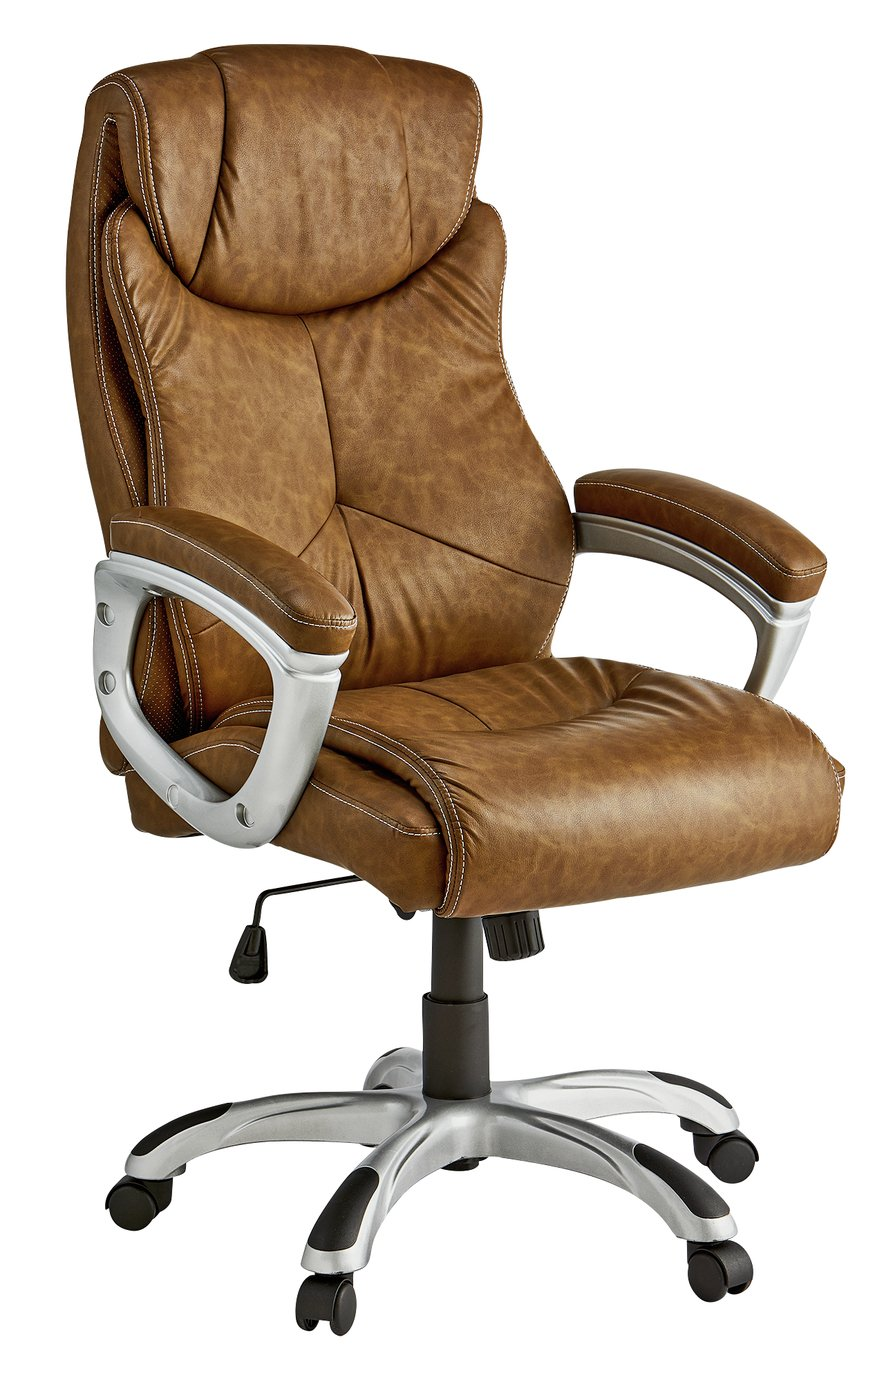 X Rocker Executive Office Chair with Sound - Brown  sc 1 st  Argos & X Rocker Gaming chairs | Argos